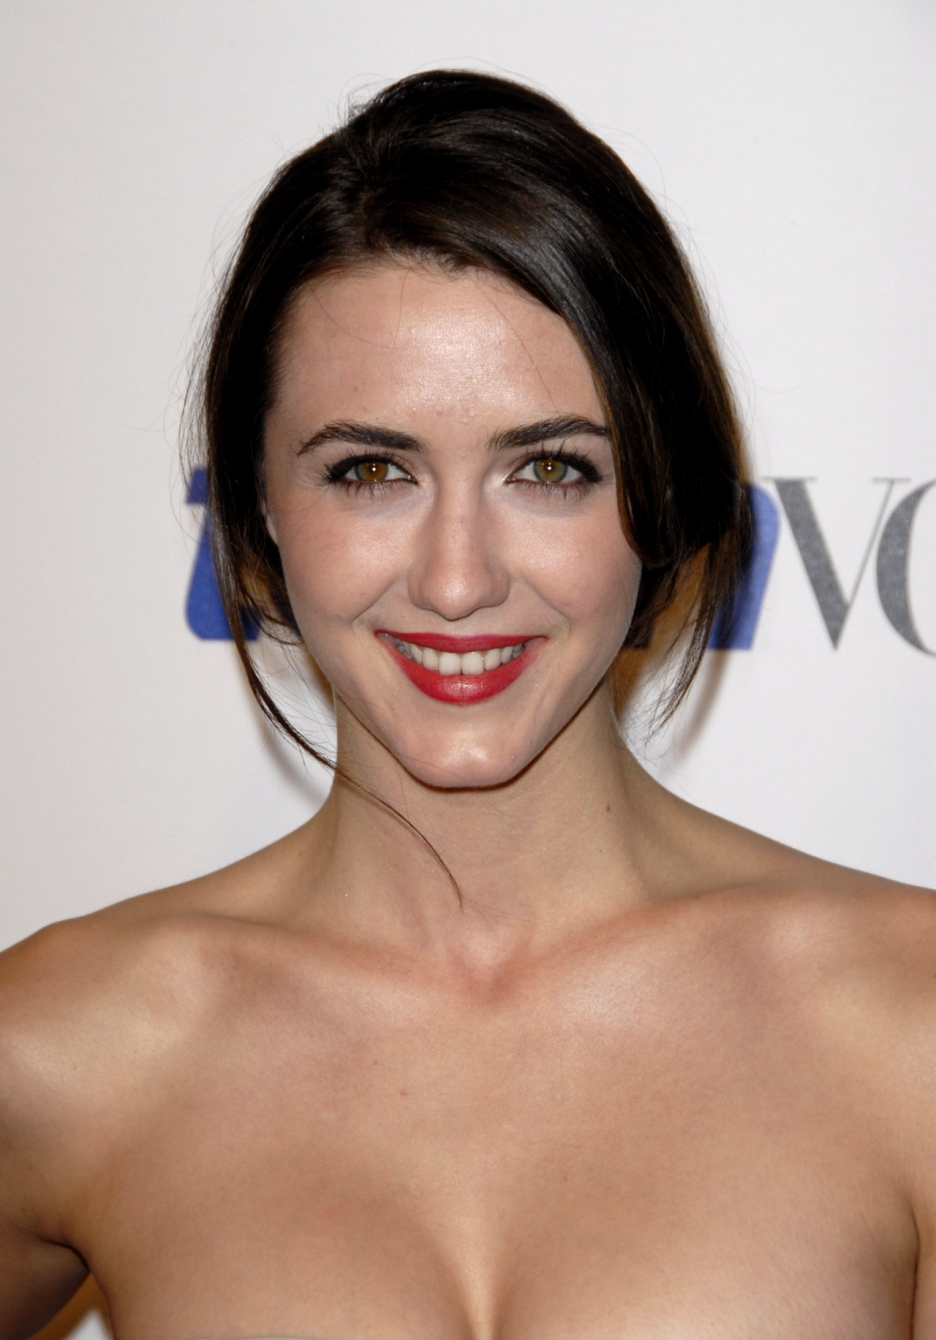 madeline zima hot - photo #1